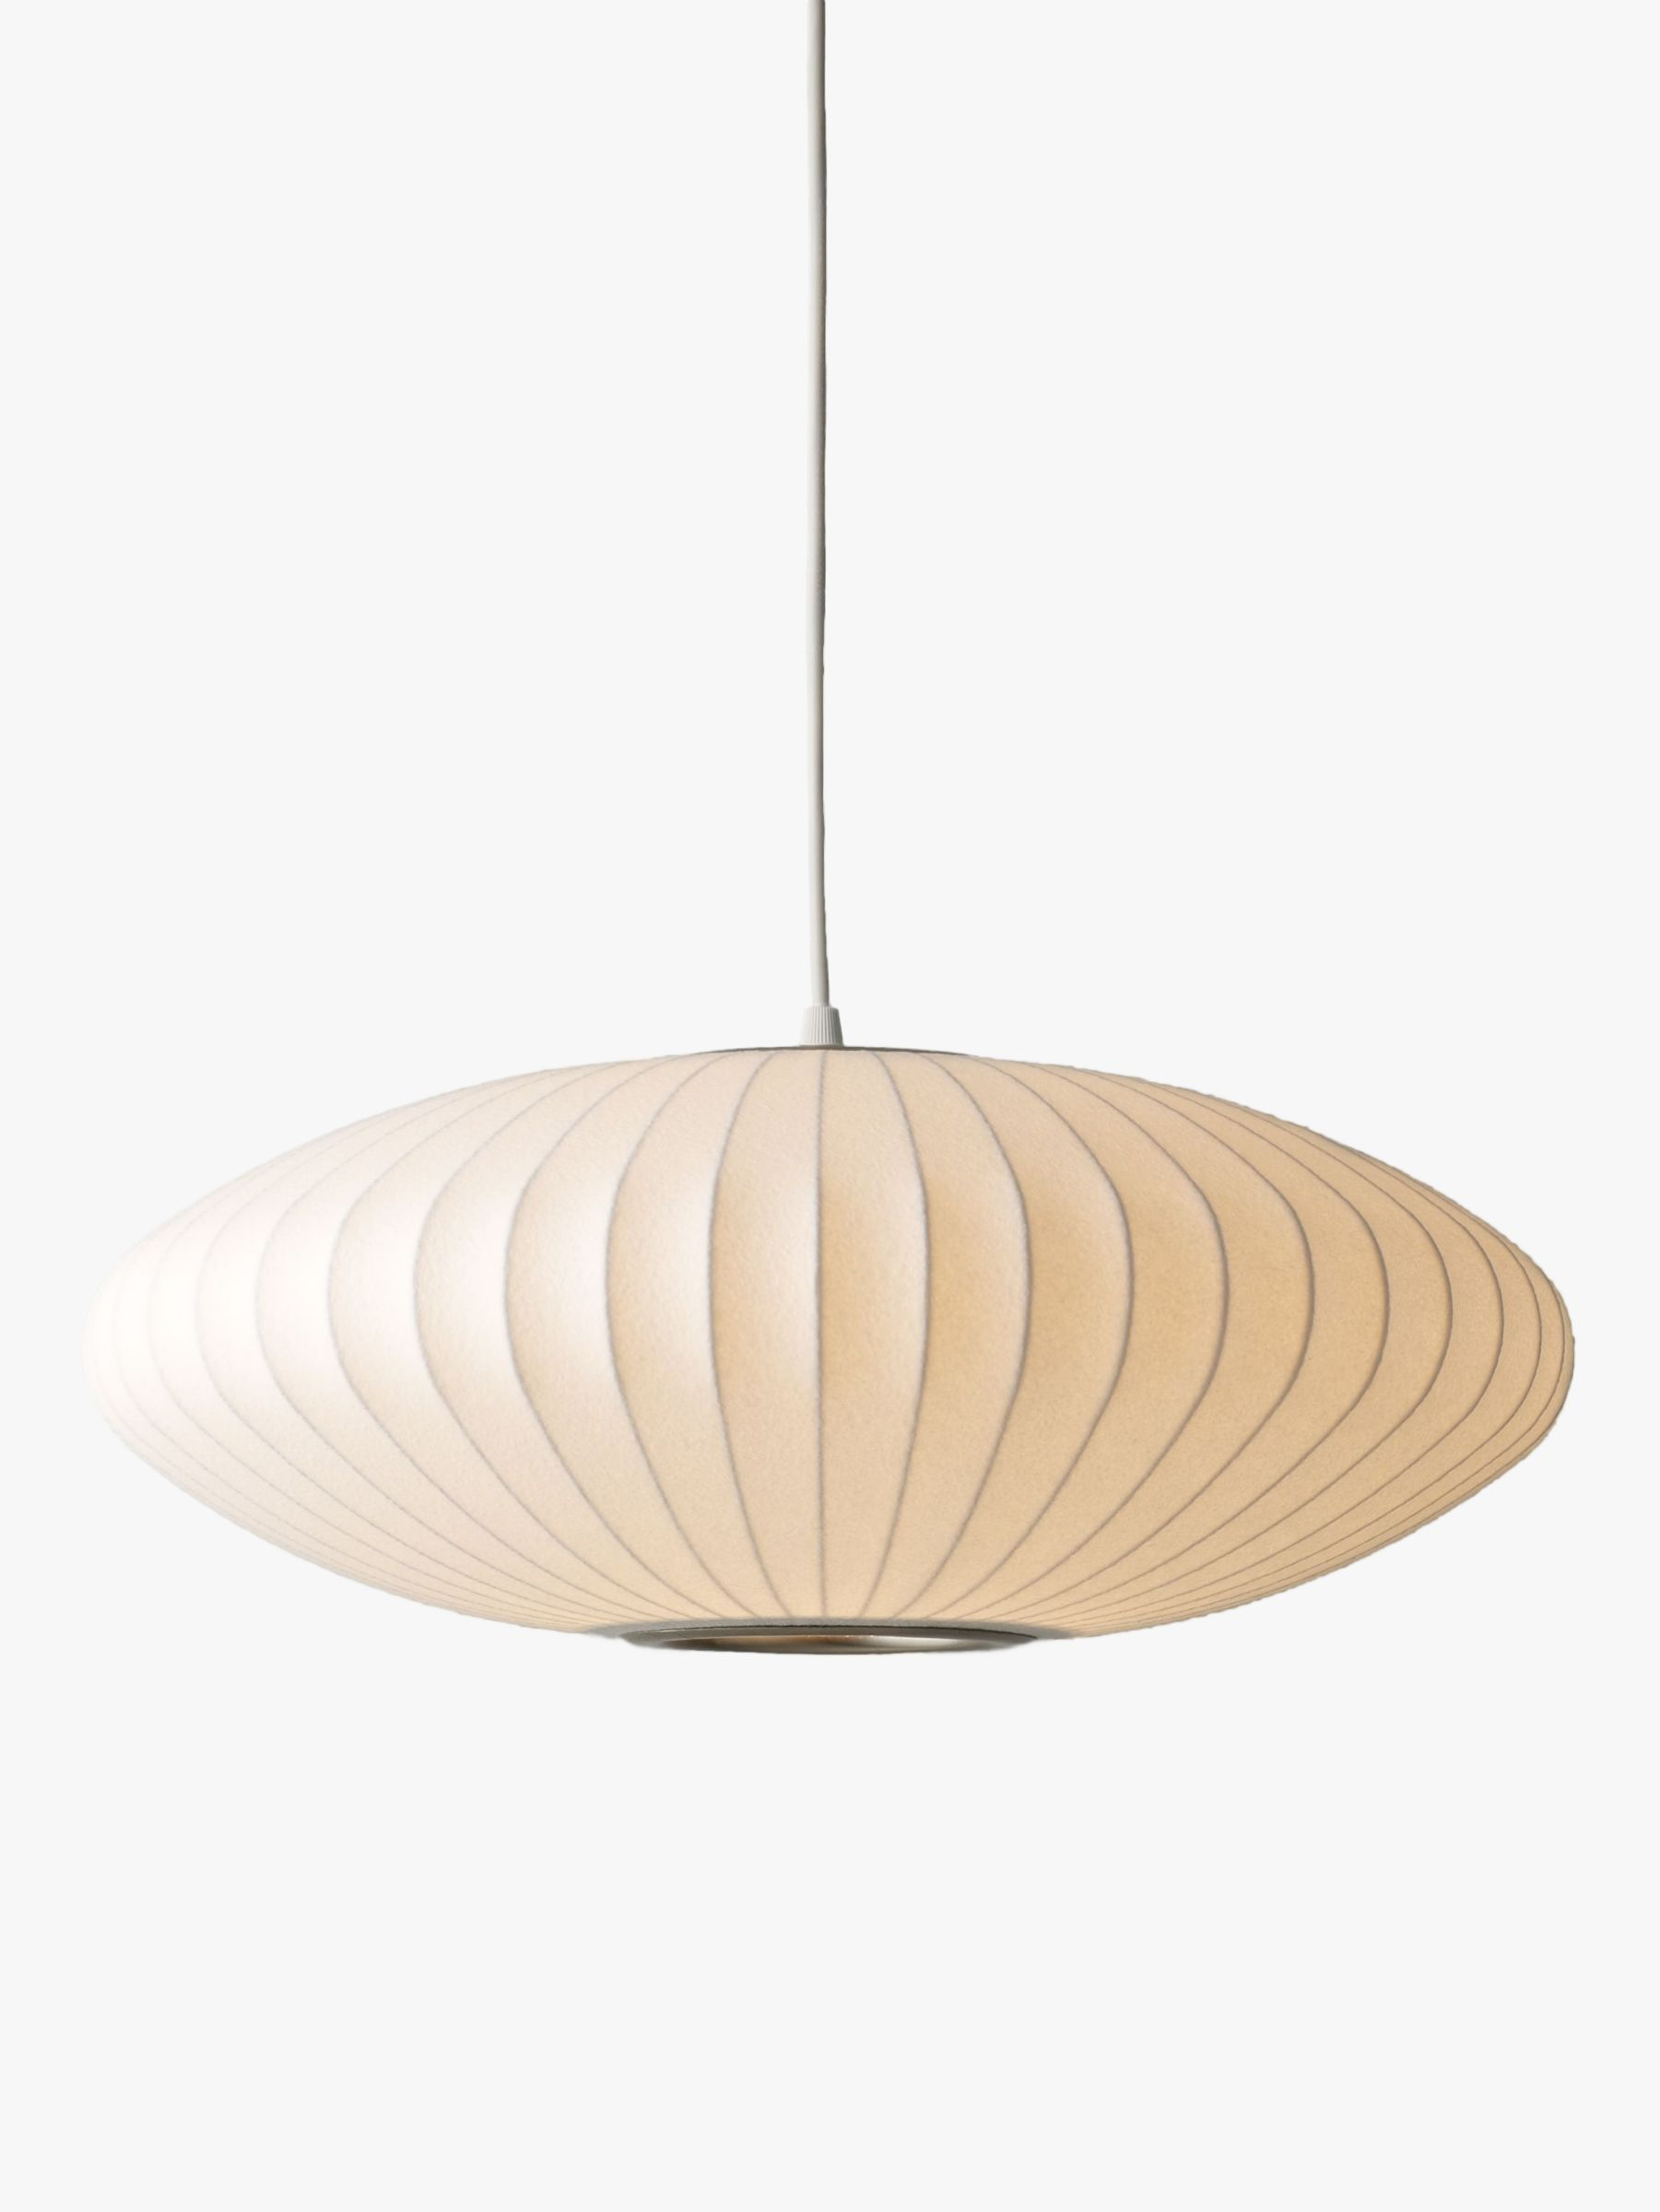 Herman Miller Bubble Saucer Ceiling Light Small At John Lewis Partners